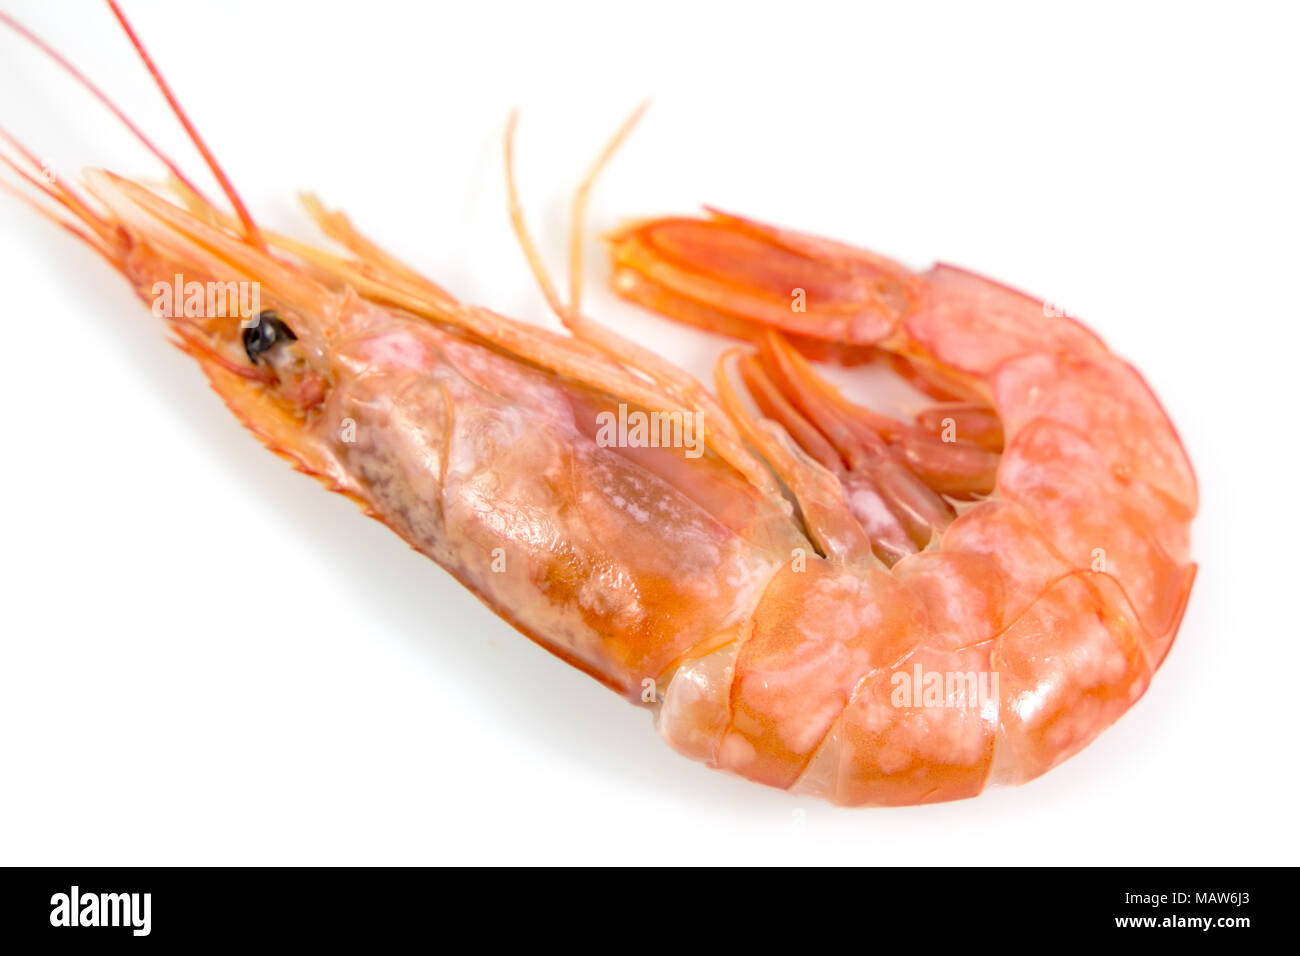 Fresh Prawn Or Fresh Shrimp Isolated On White Background Food